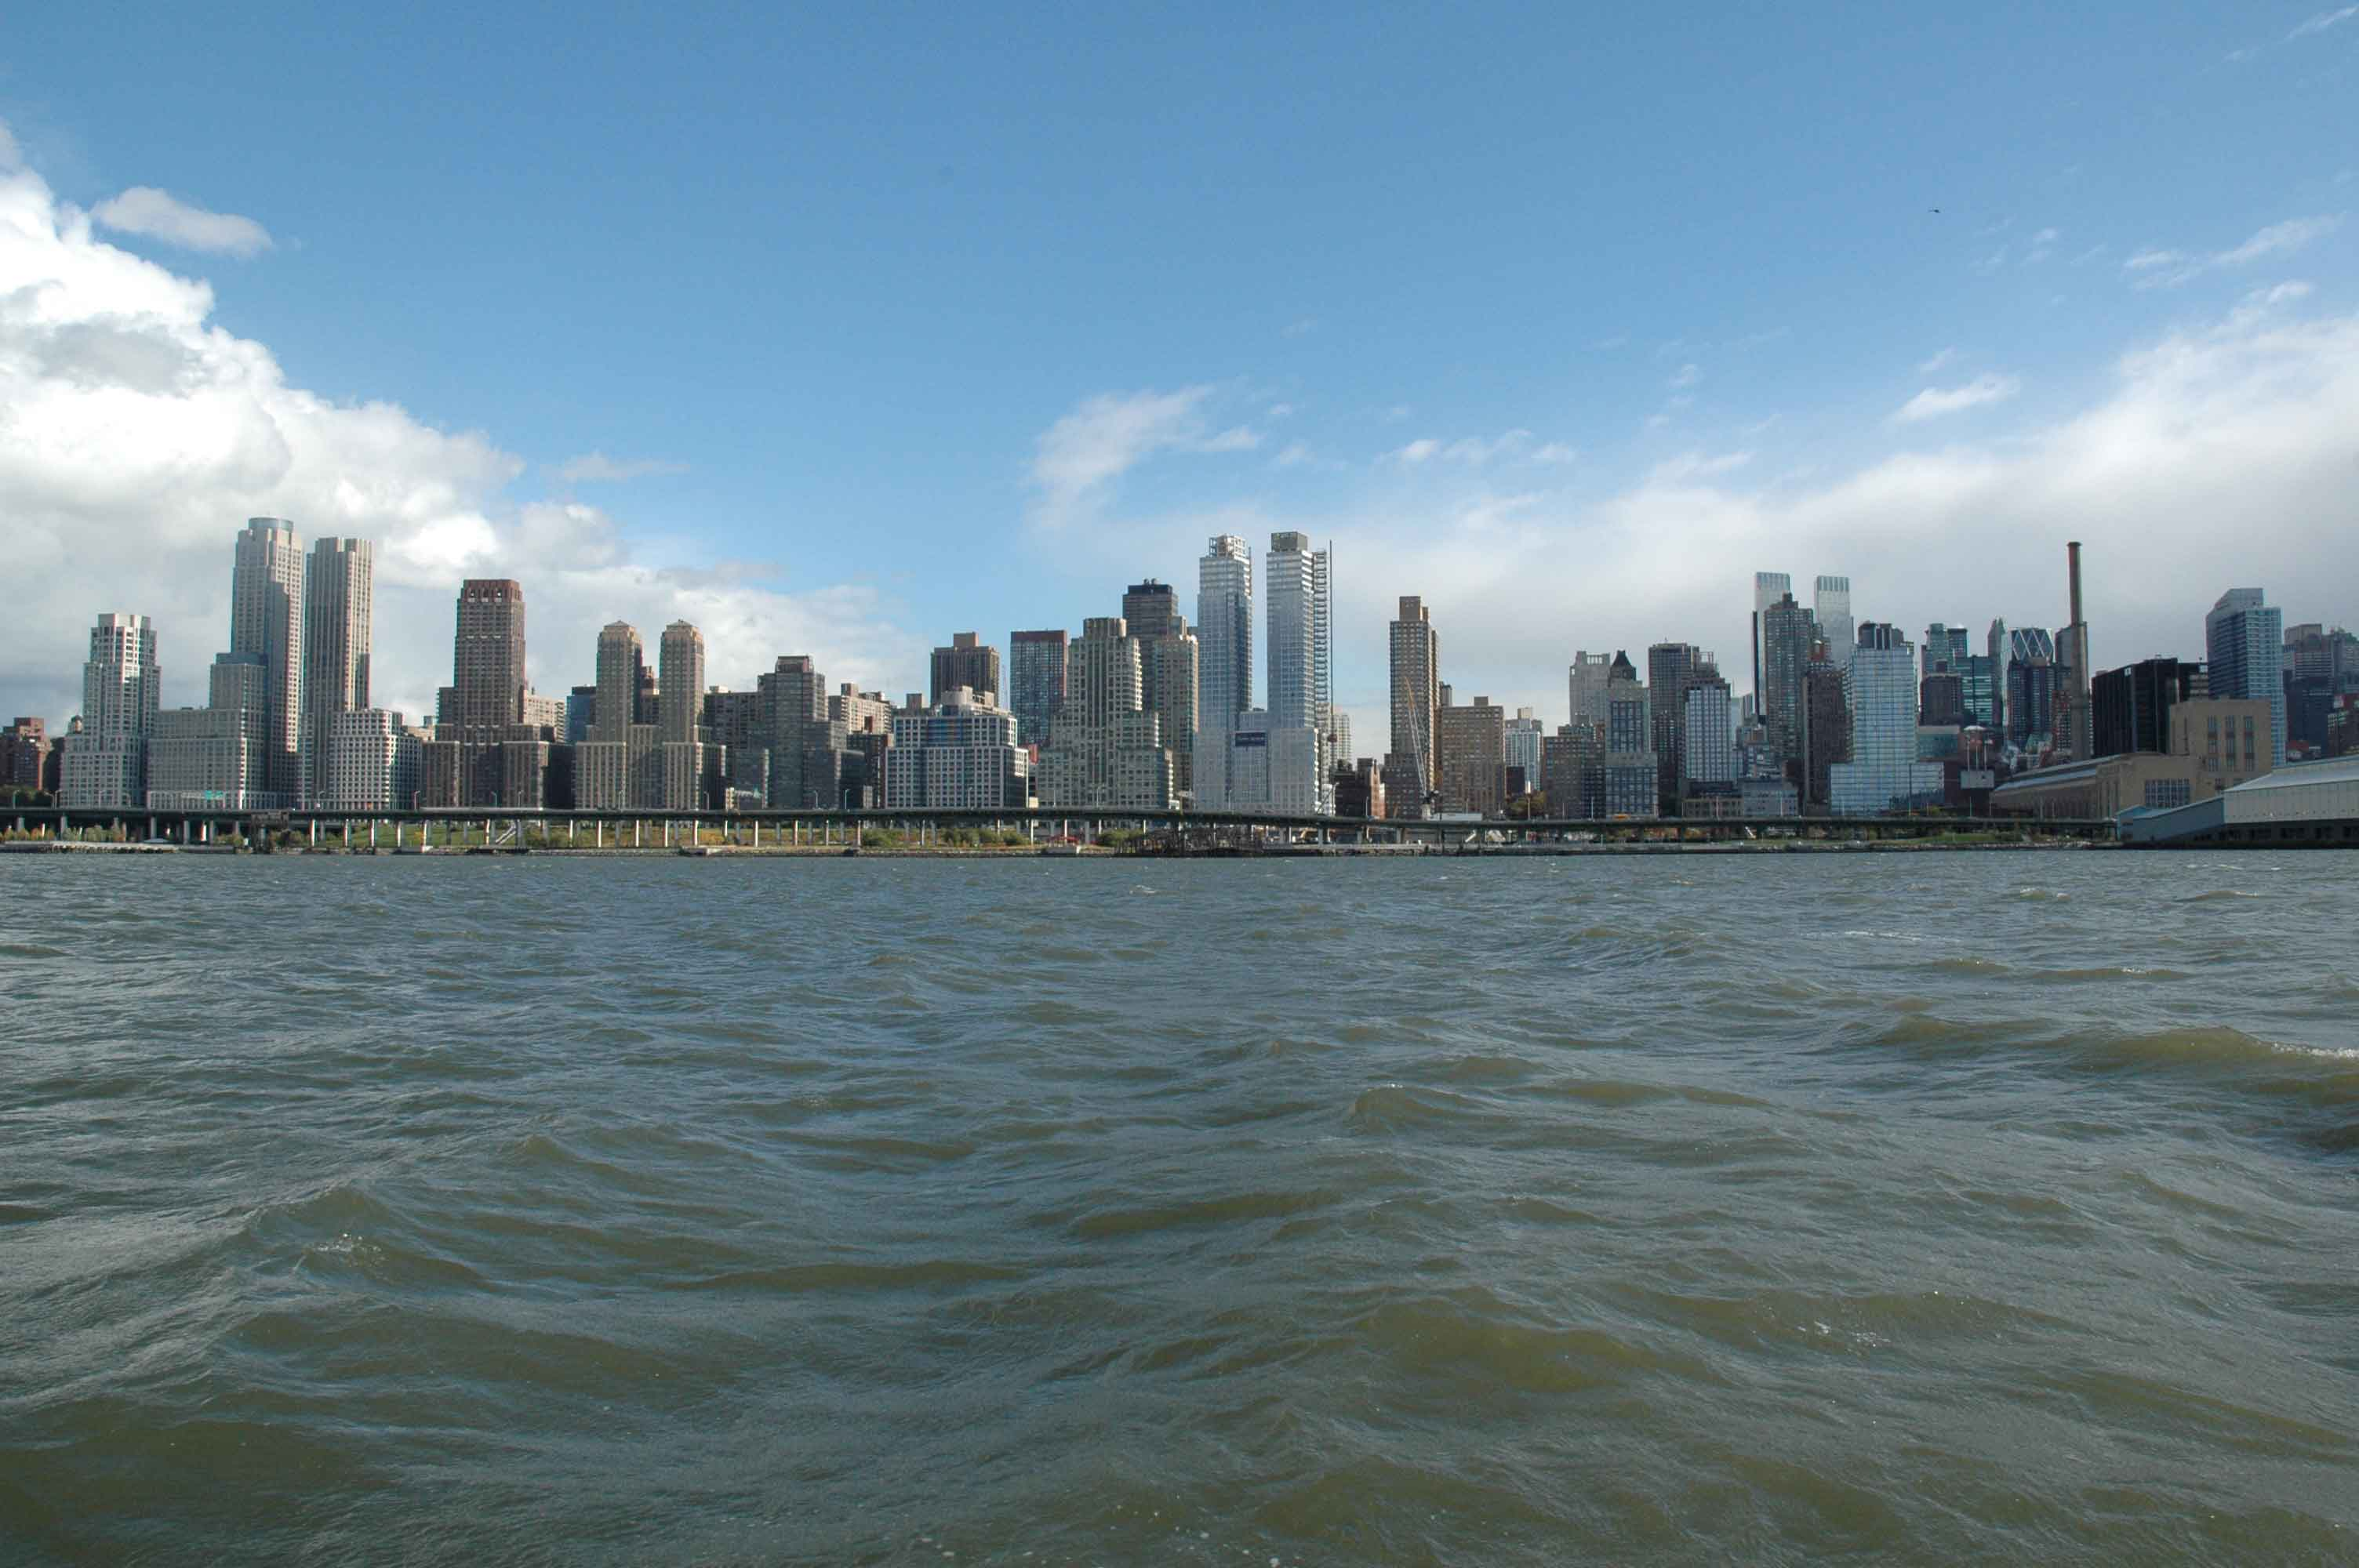 Manhattan on the Hudson.